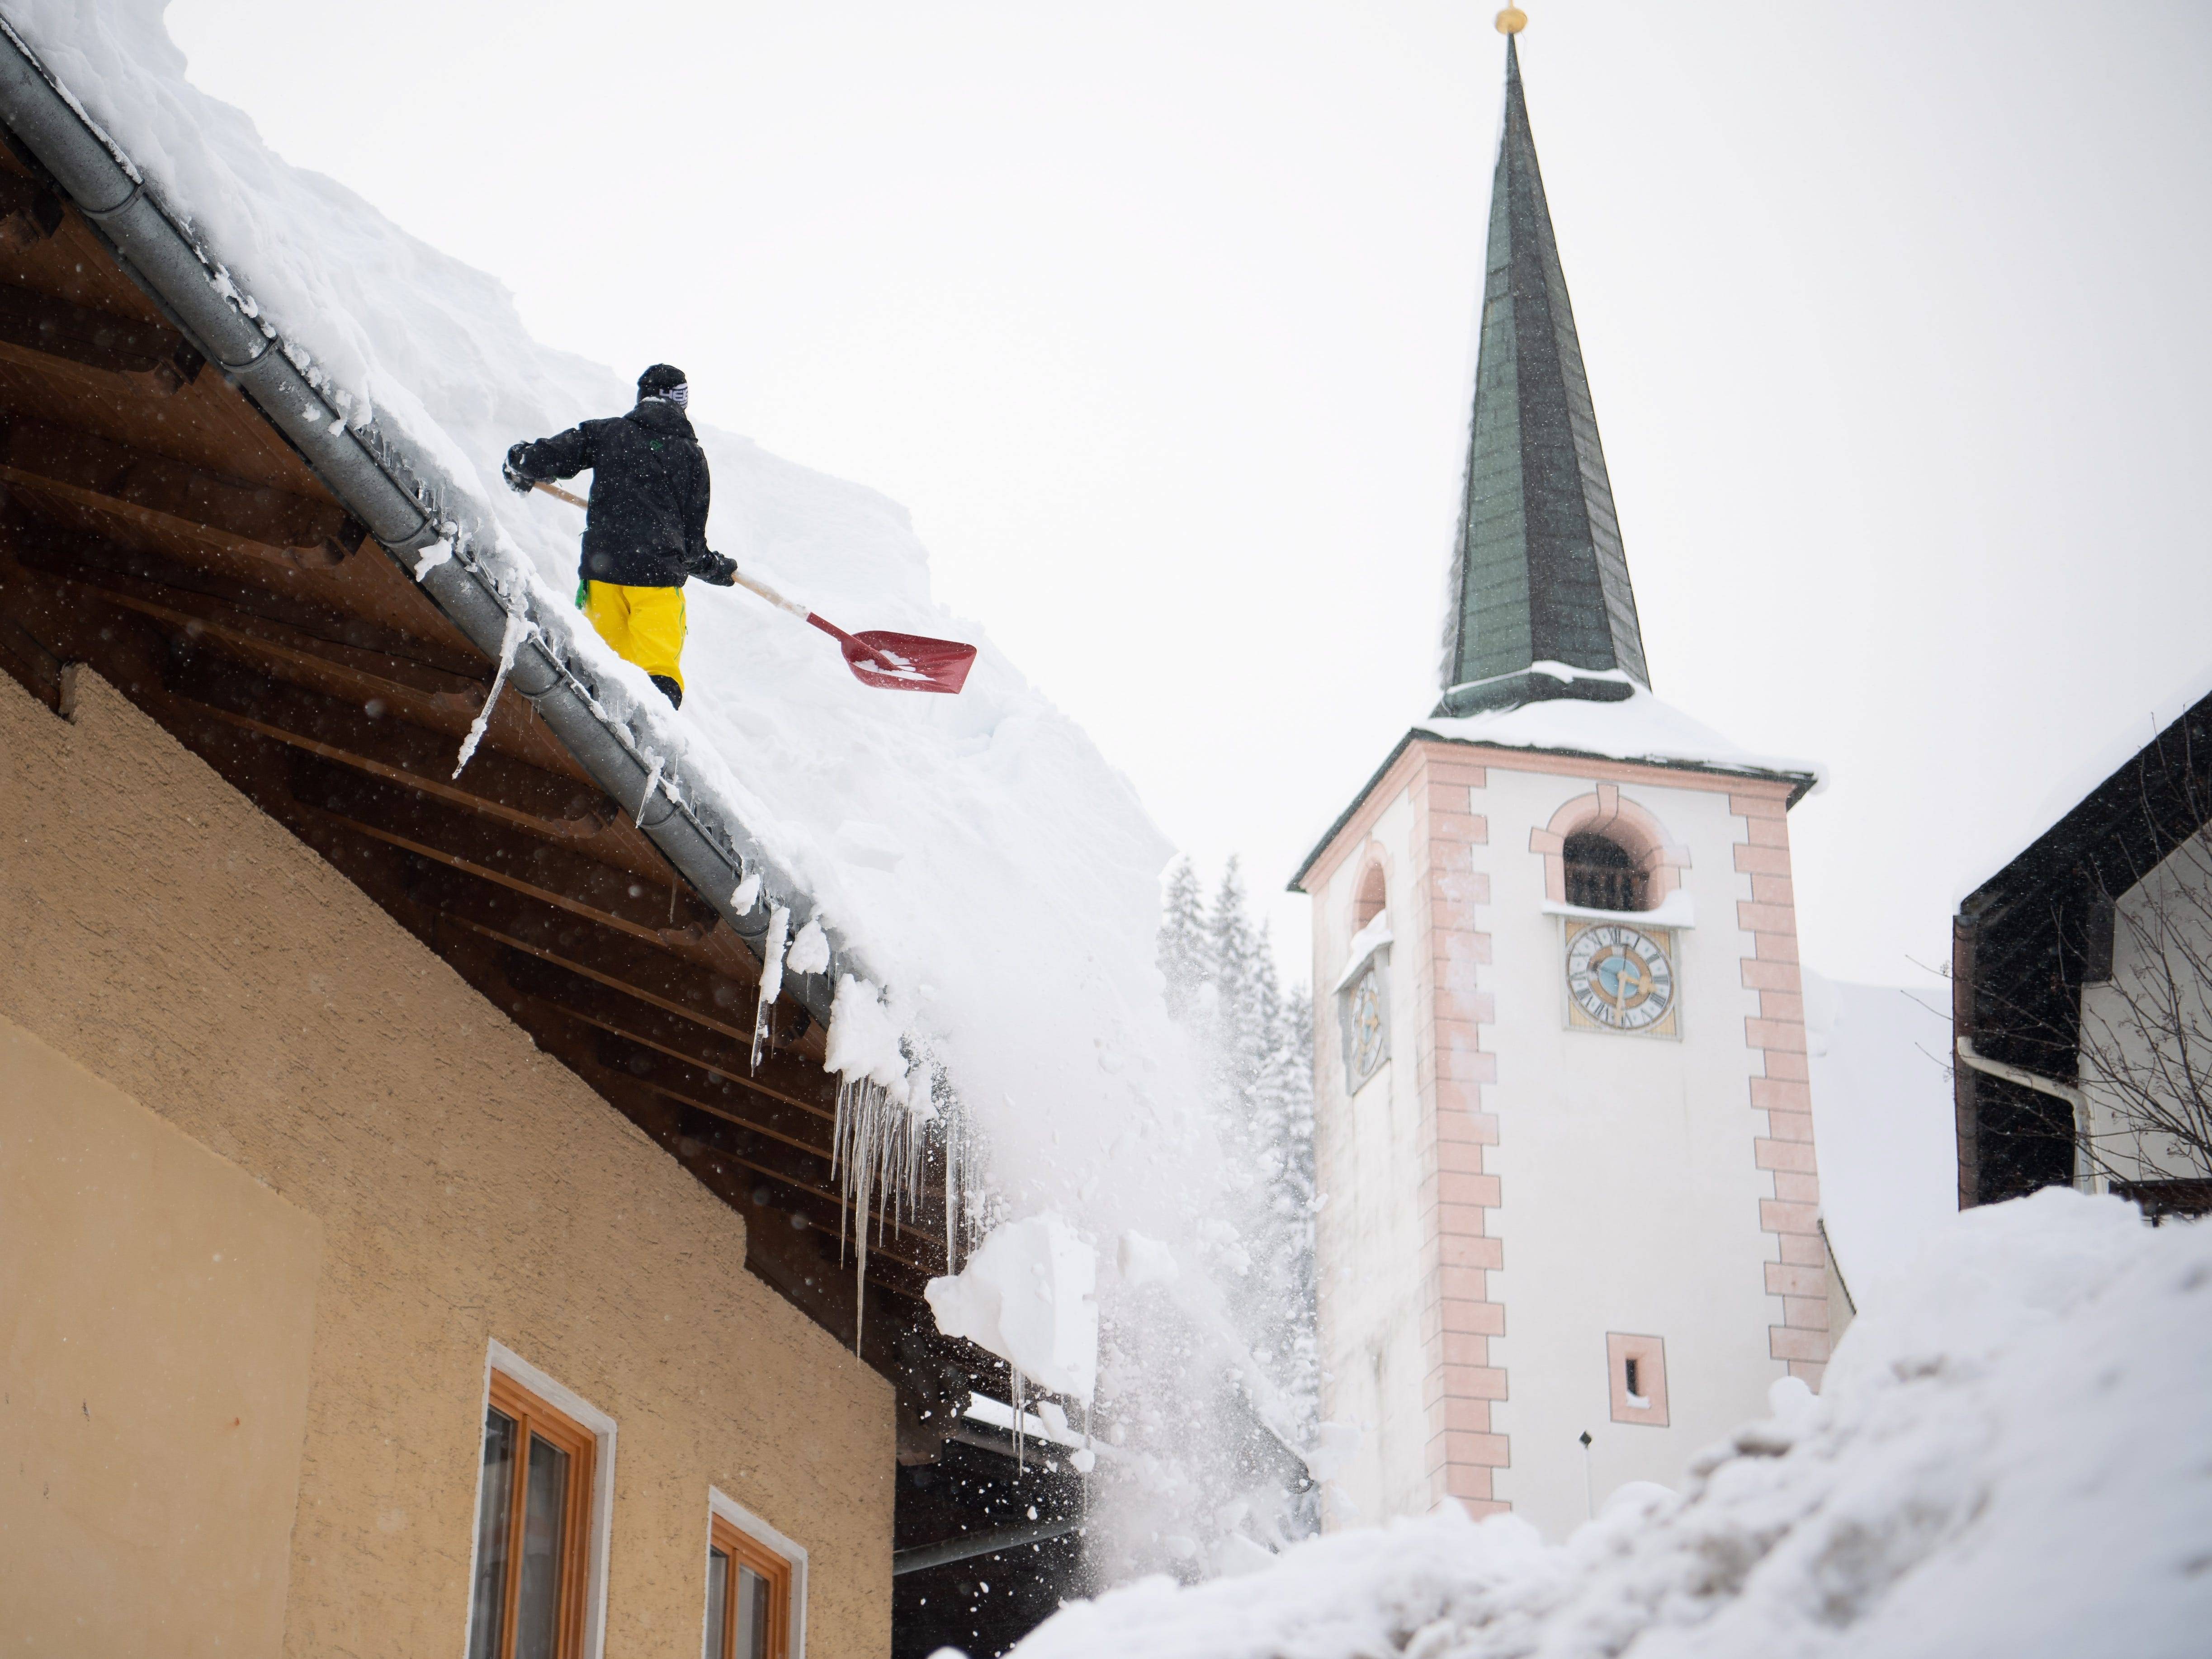 A msn tries to remove snow from a roof of a house in Filzmoos, Austria, Jan. 8, 2019.